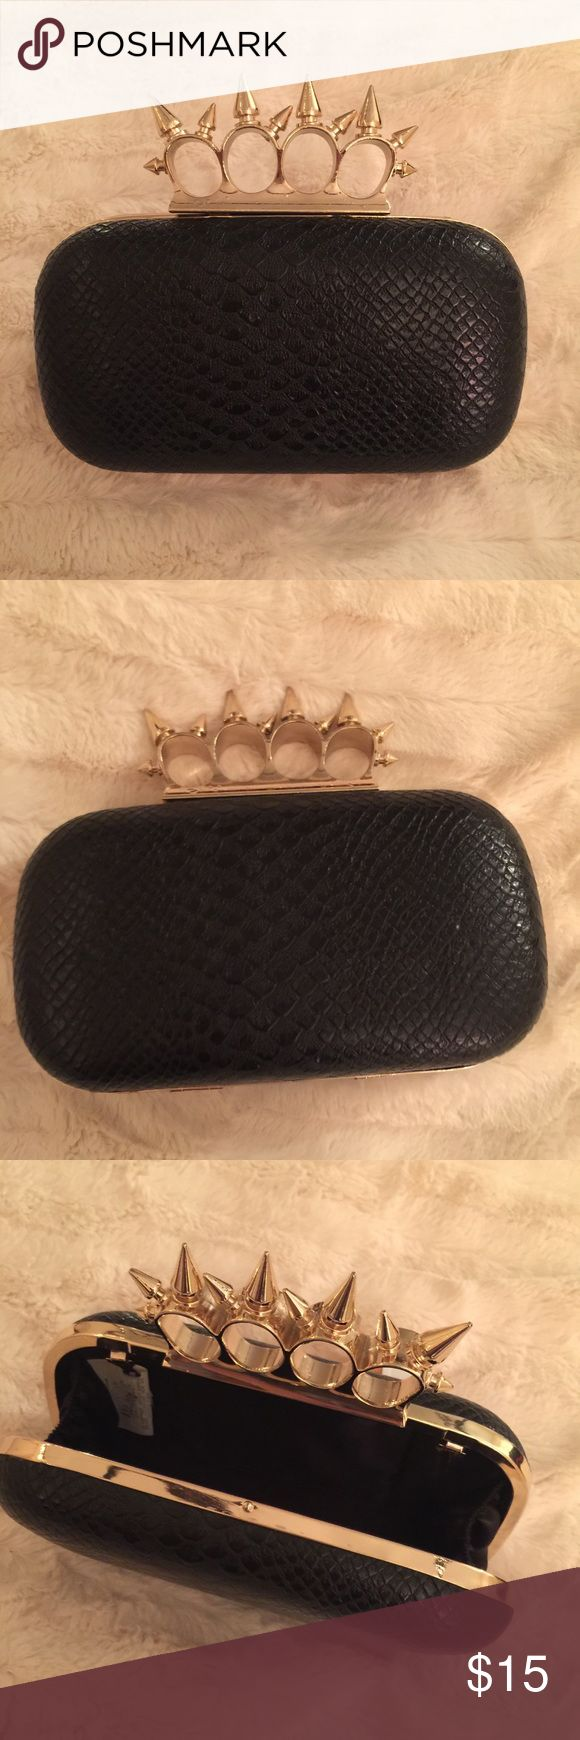 Brass knuckle clutch Never used. Tried to channel my inner Margot Robbie with her Alexander McQueen clutch, but I just couldn't rock it. Faux snake embossed with gold metal trim. Just big enough for a 7plus to fit inside. It has hooks inside for a chain, but I don't remember ever having one. Bags Clutches & Wristlets